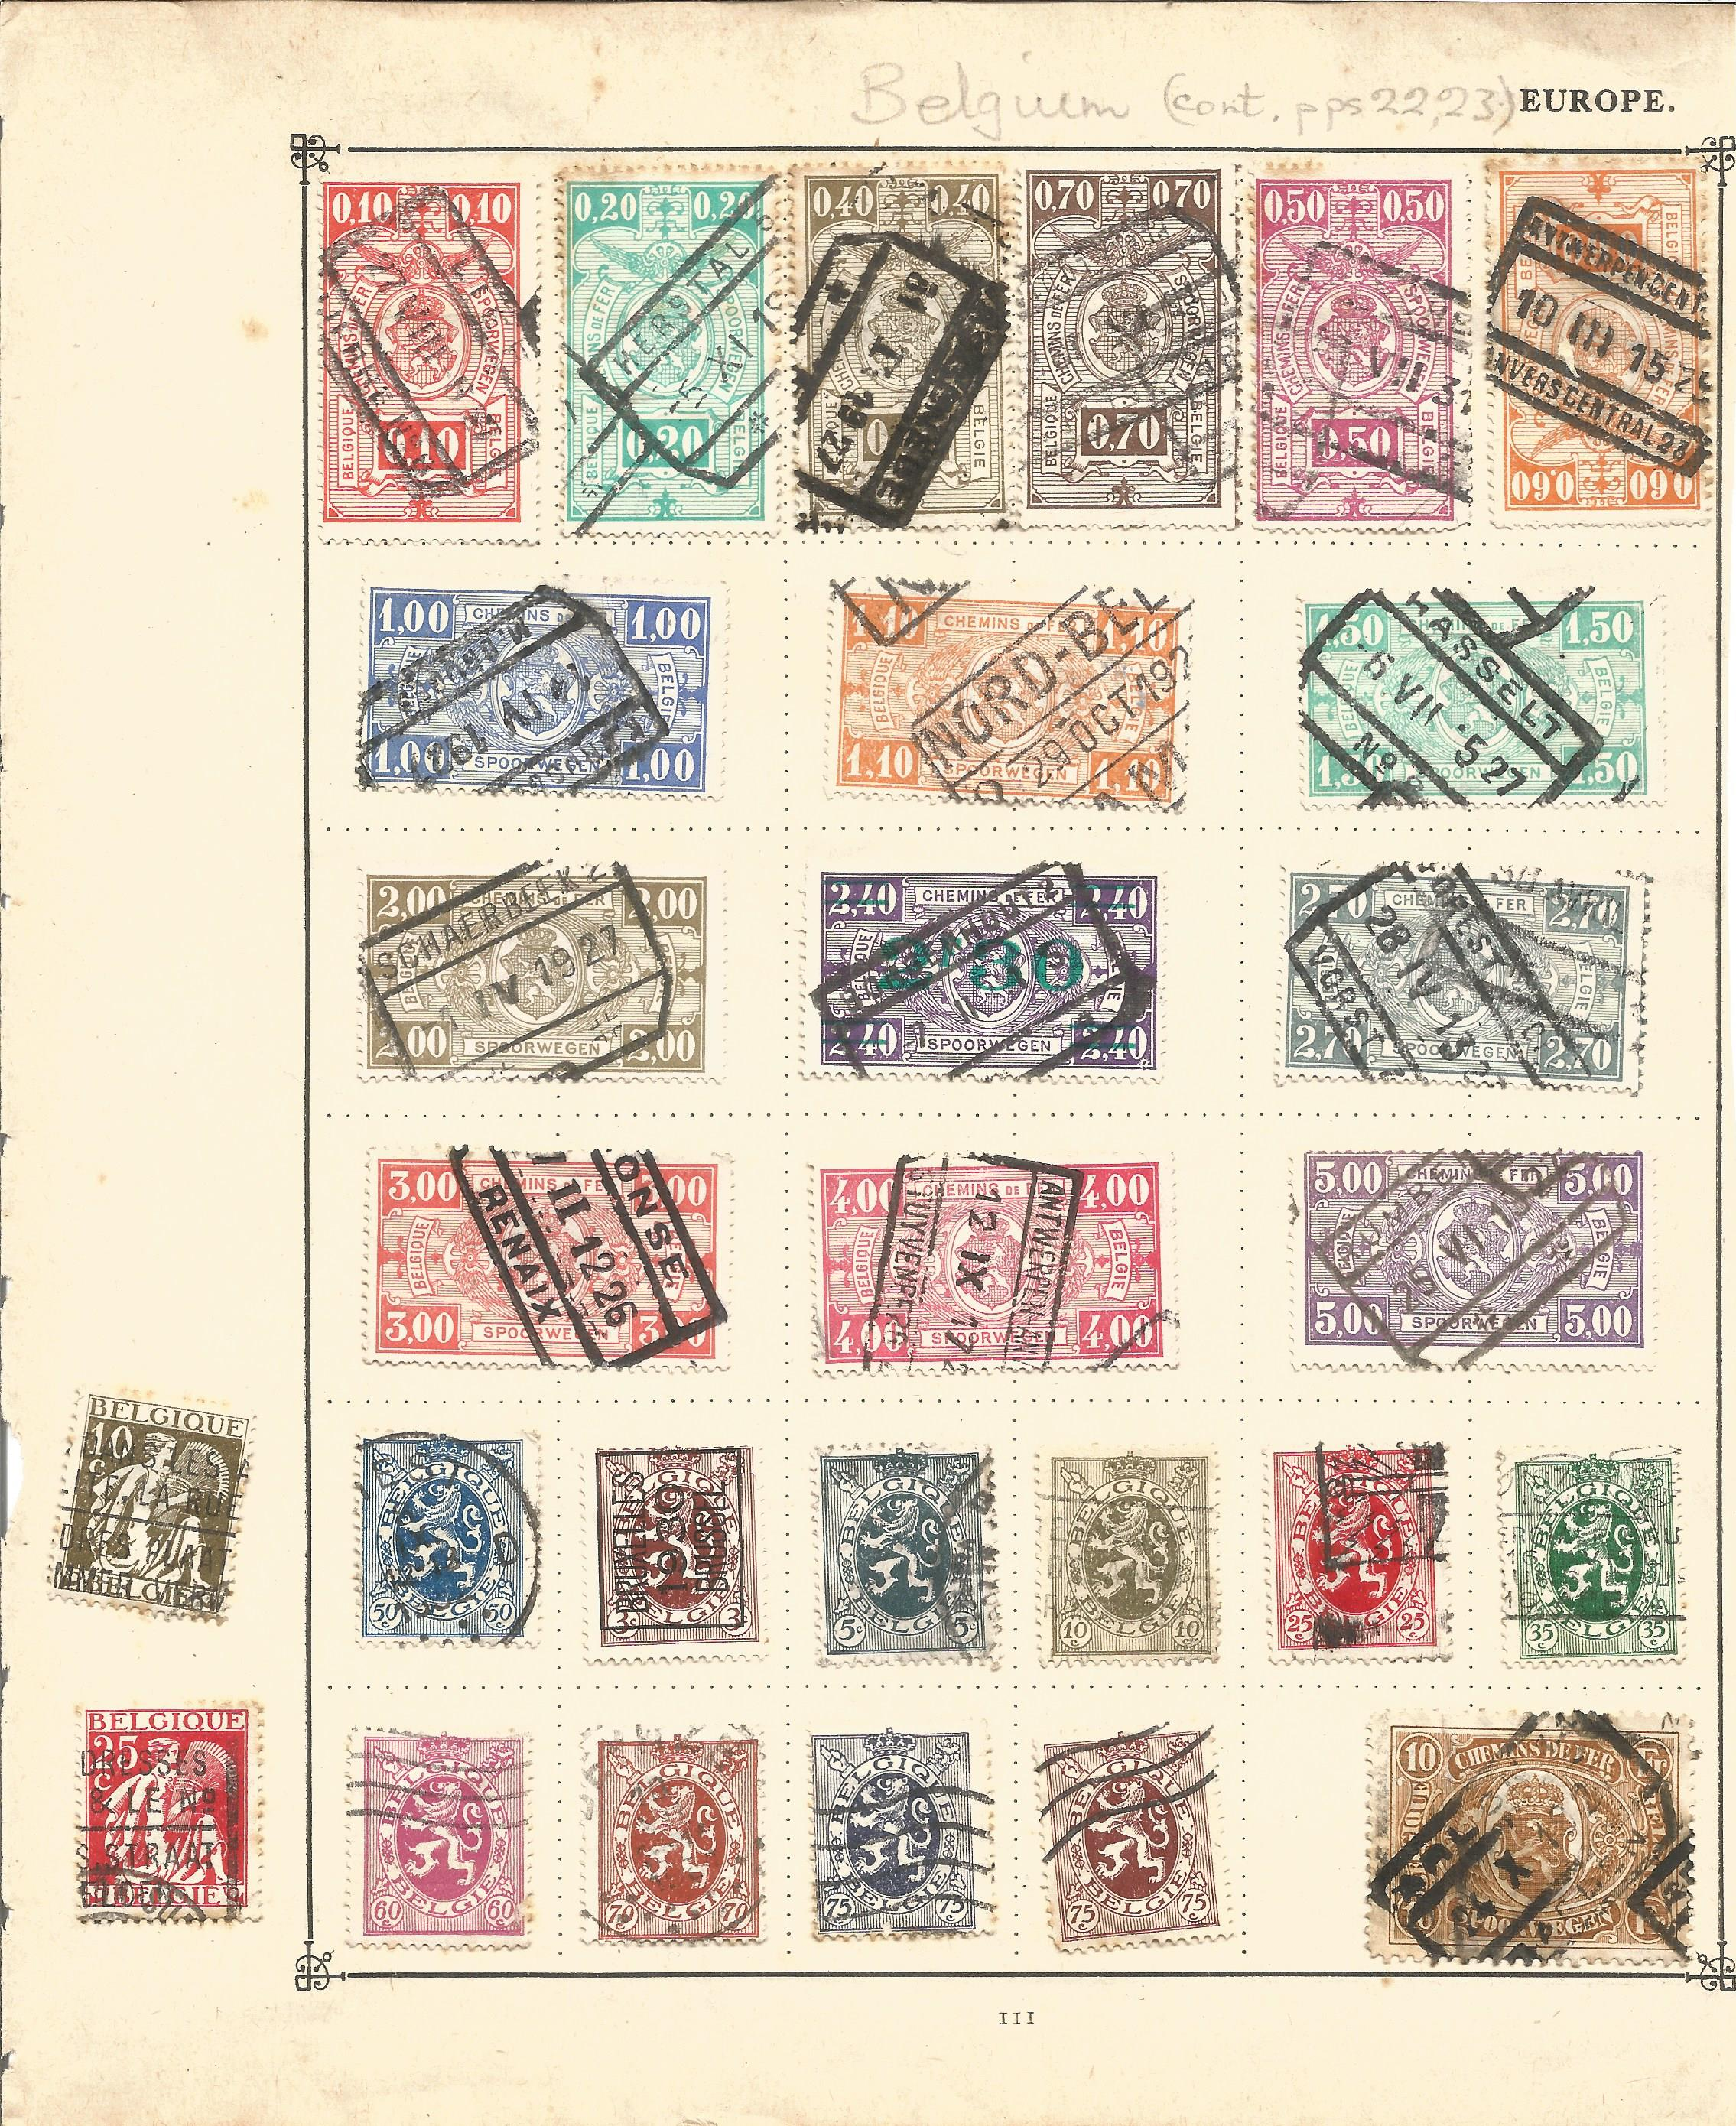 European stamp collection on 7 pages. Includes Belgium, Holland, Hungary. Good condition. We combine